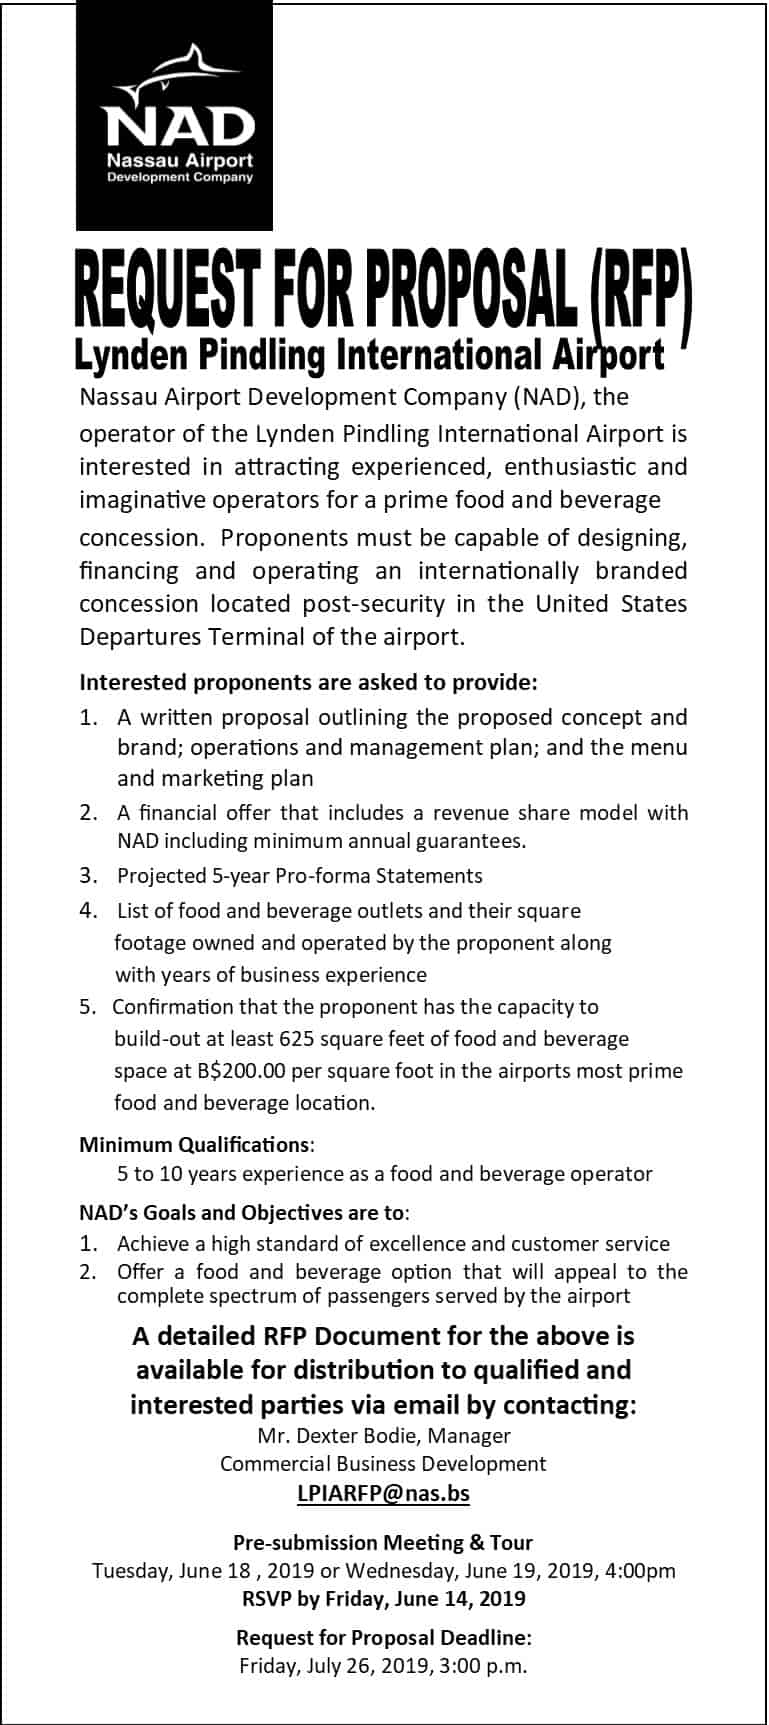 Request For Proposal (RFP) – Lynden Pindling International Airport